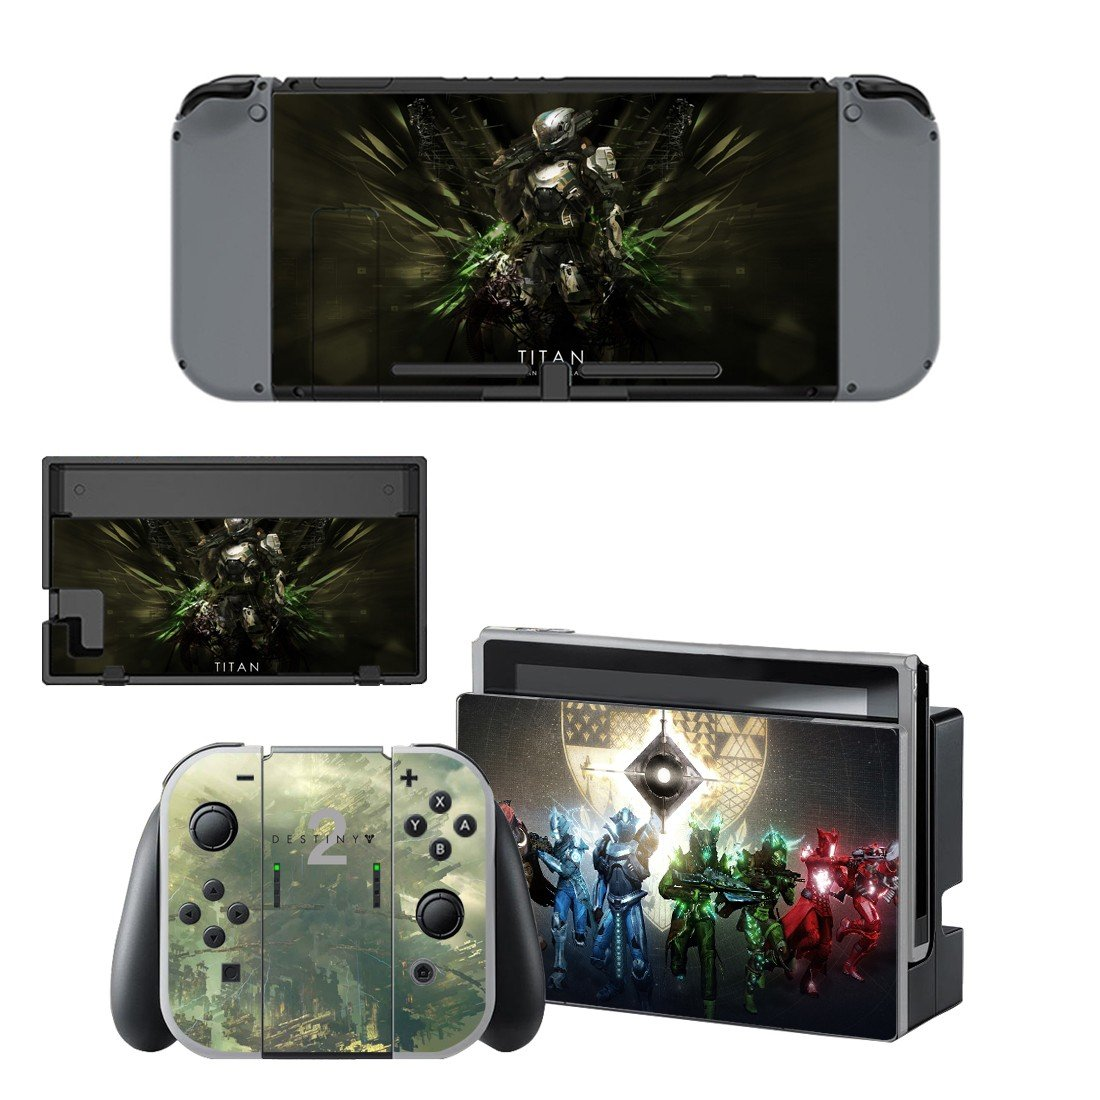 TitanNintendo switch console sticker skin